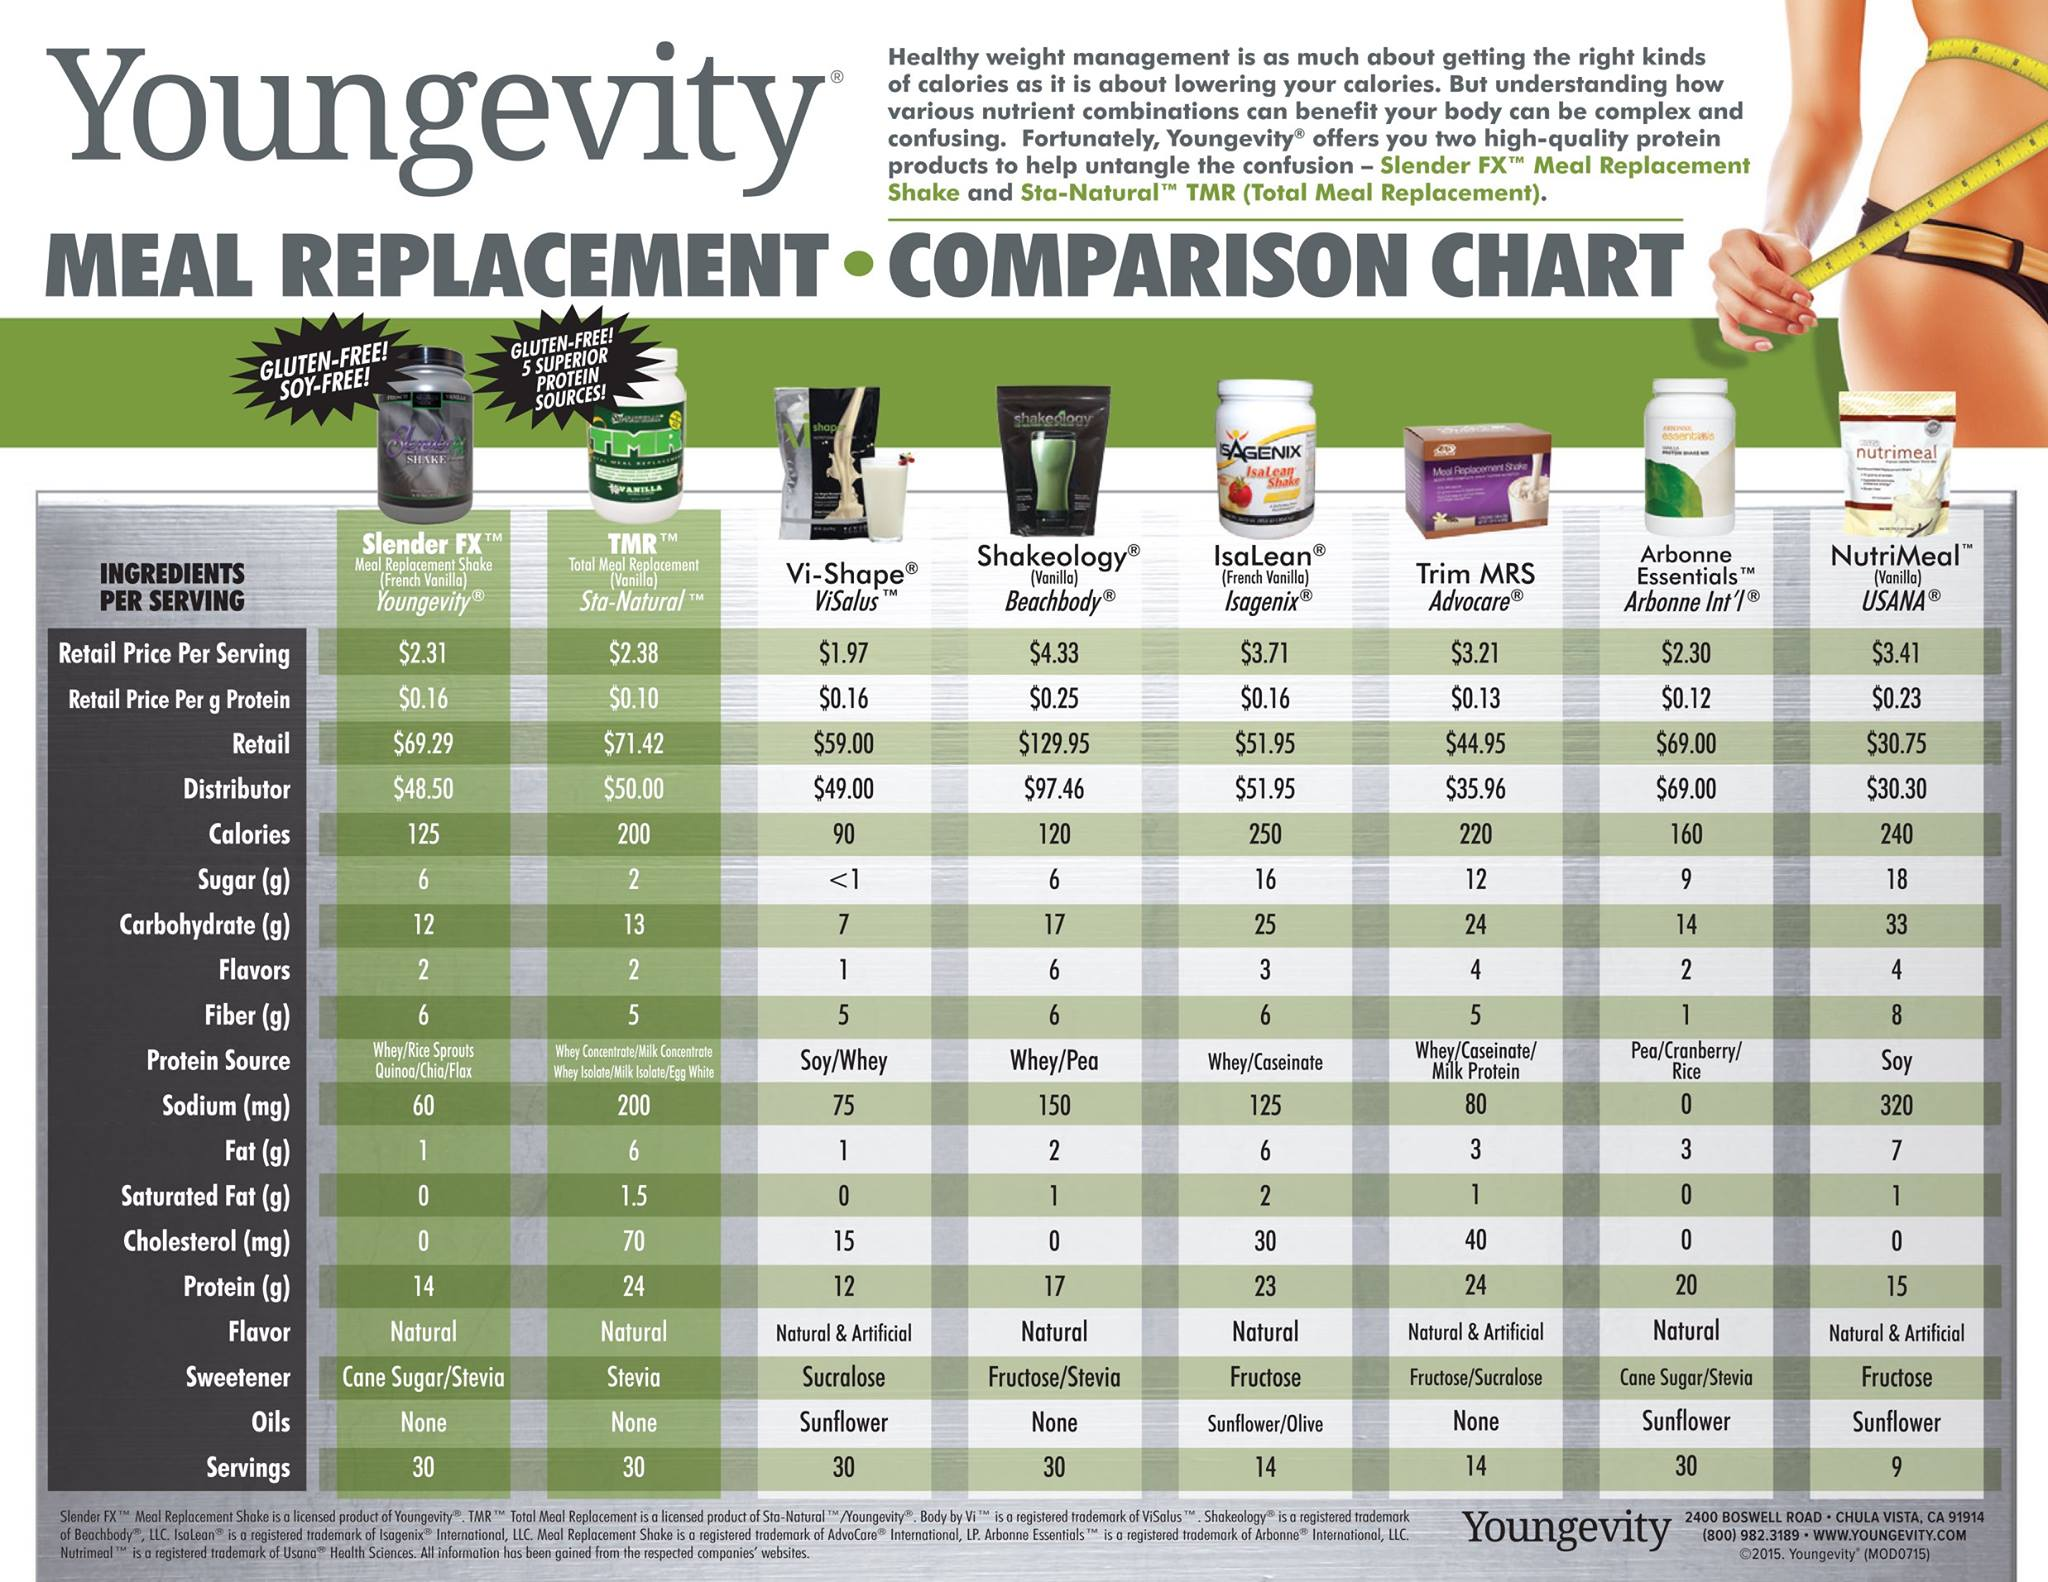 Weight loss live 180 team meal replacement comparison chart nvjuhfo Choice Image